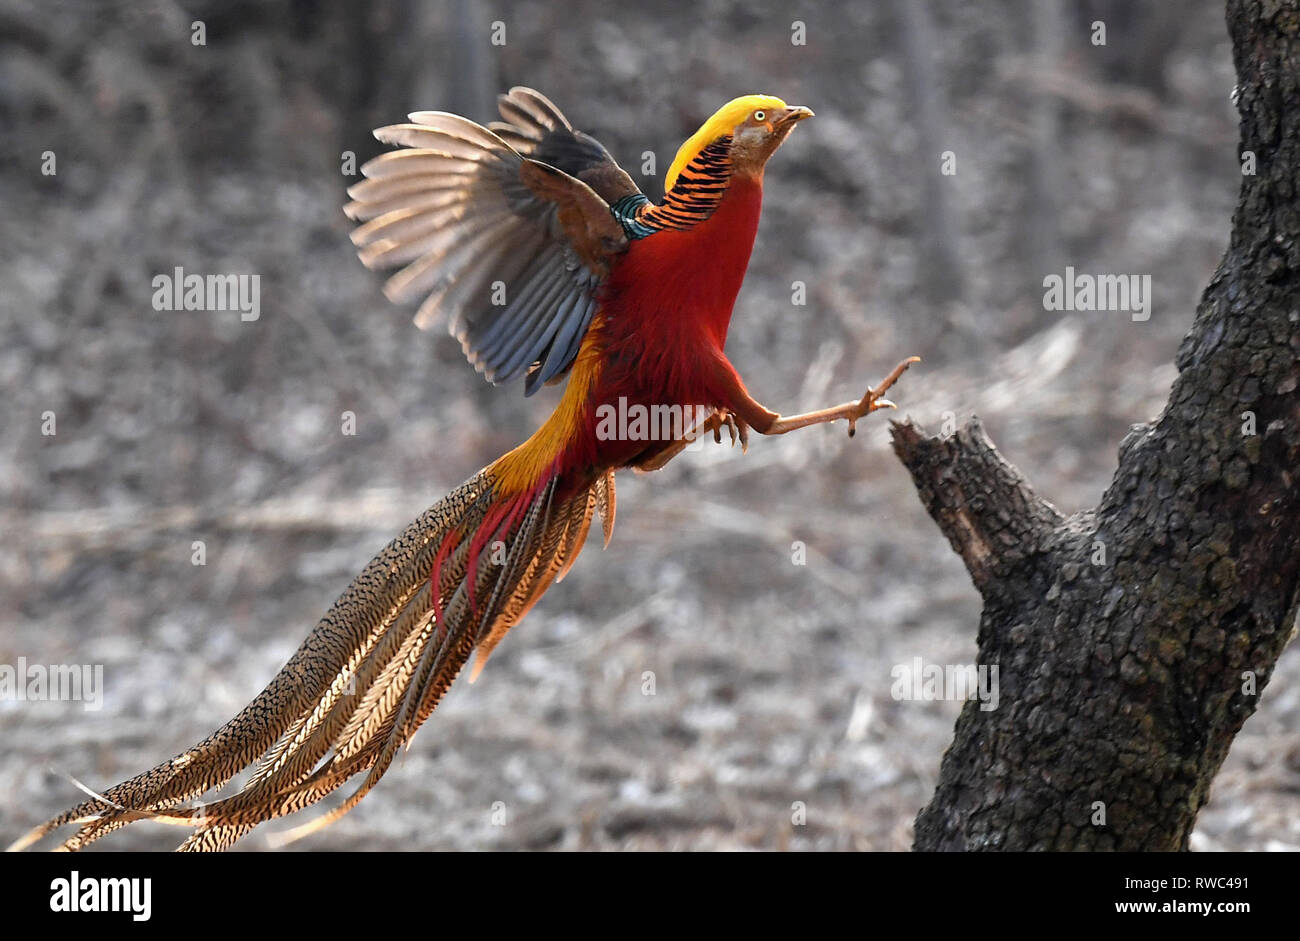 Ruyang, China's Henan Province. 5th Mar, 2019. A golden pheasant sports in the woods of Mengcun Village in Ruyang County, central China's Henan Province, March 5, 2019. Credit: Li An/Xinhua/Alamy Live News - Stock Image